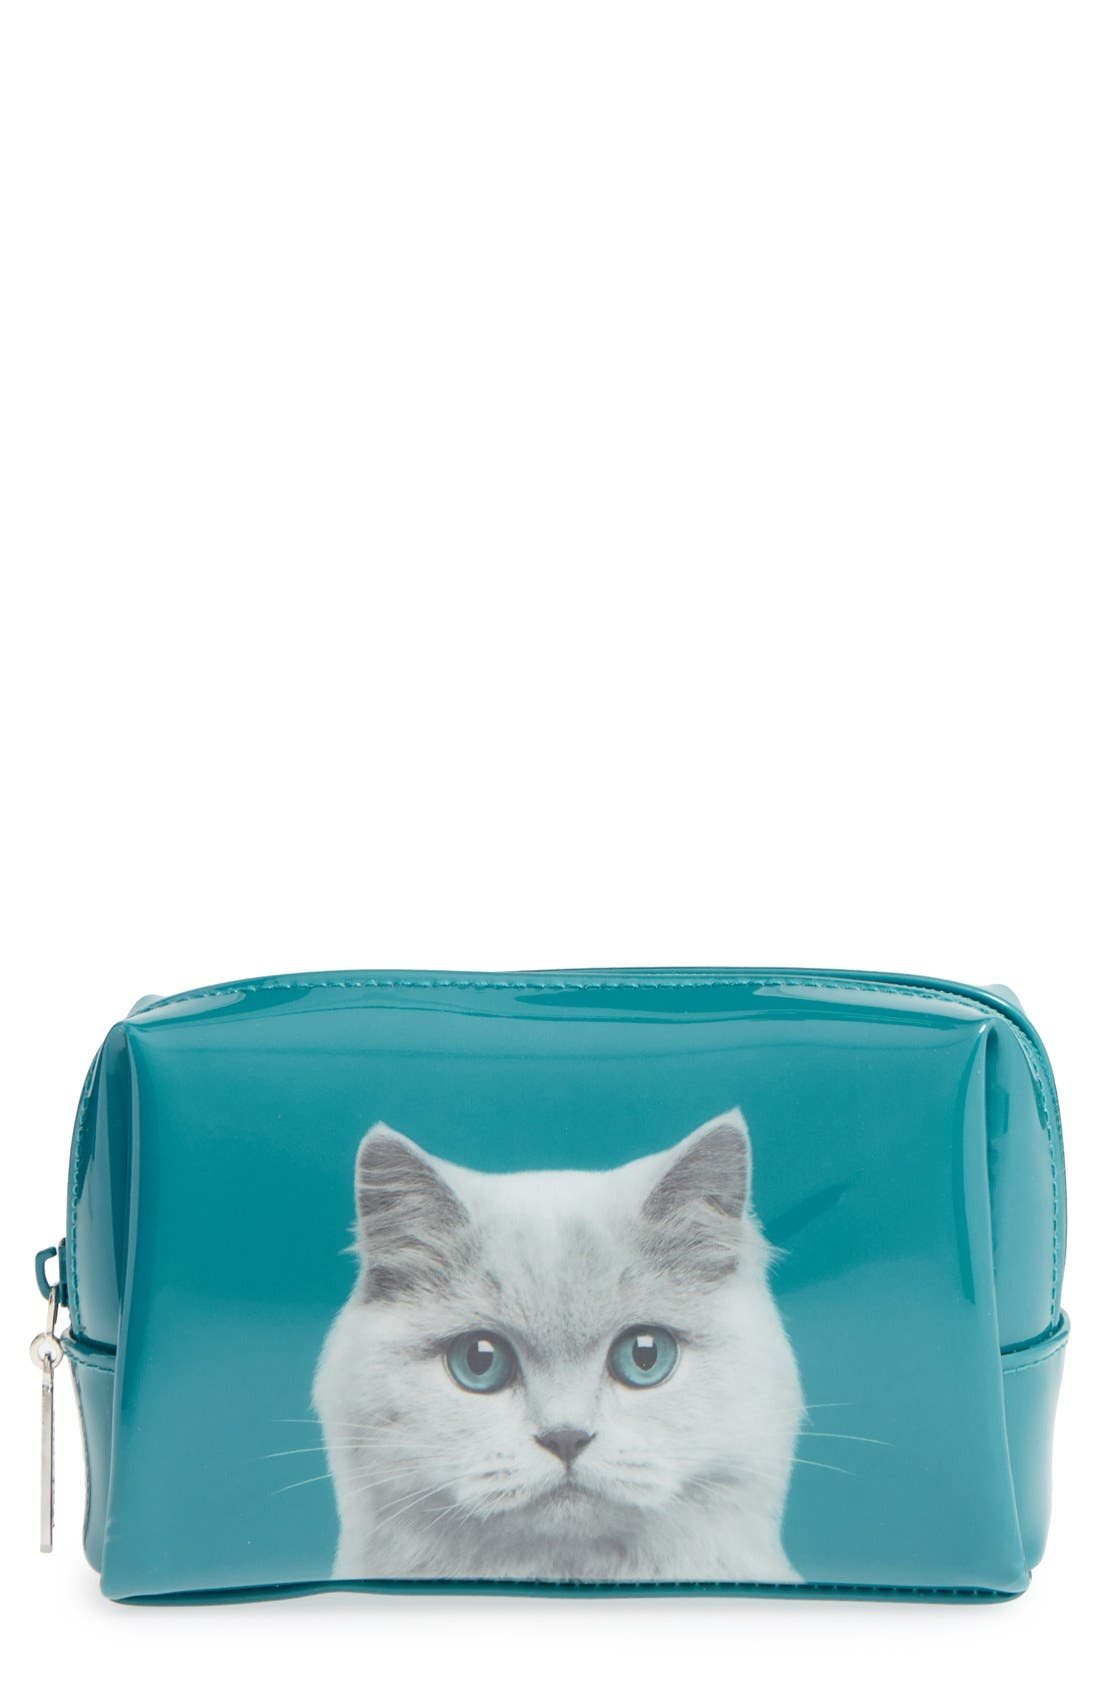 Catseye London Cat Cosmetics Case